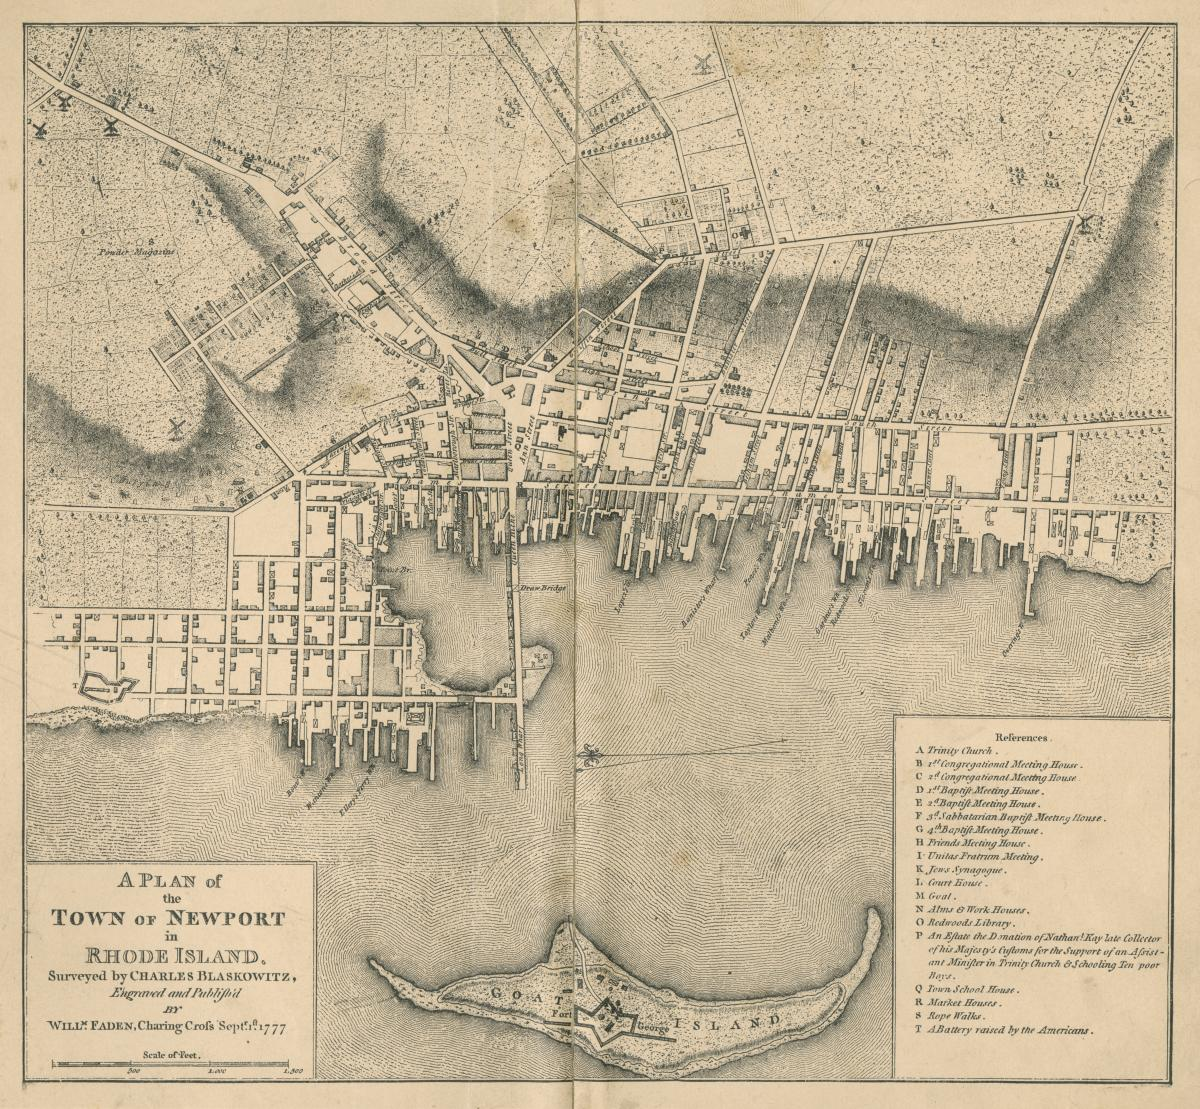 A Plan of the Town of Newport in Rhode Island (1777) shows the city when John A. Howe first arrived there and the British occupied it.